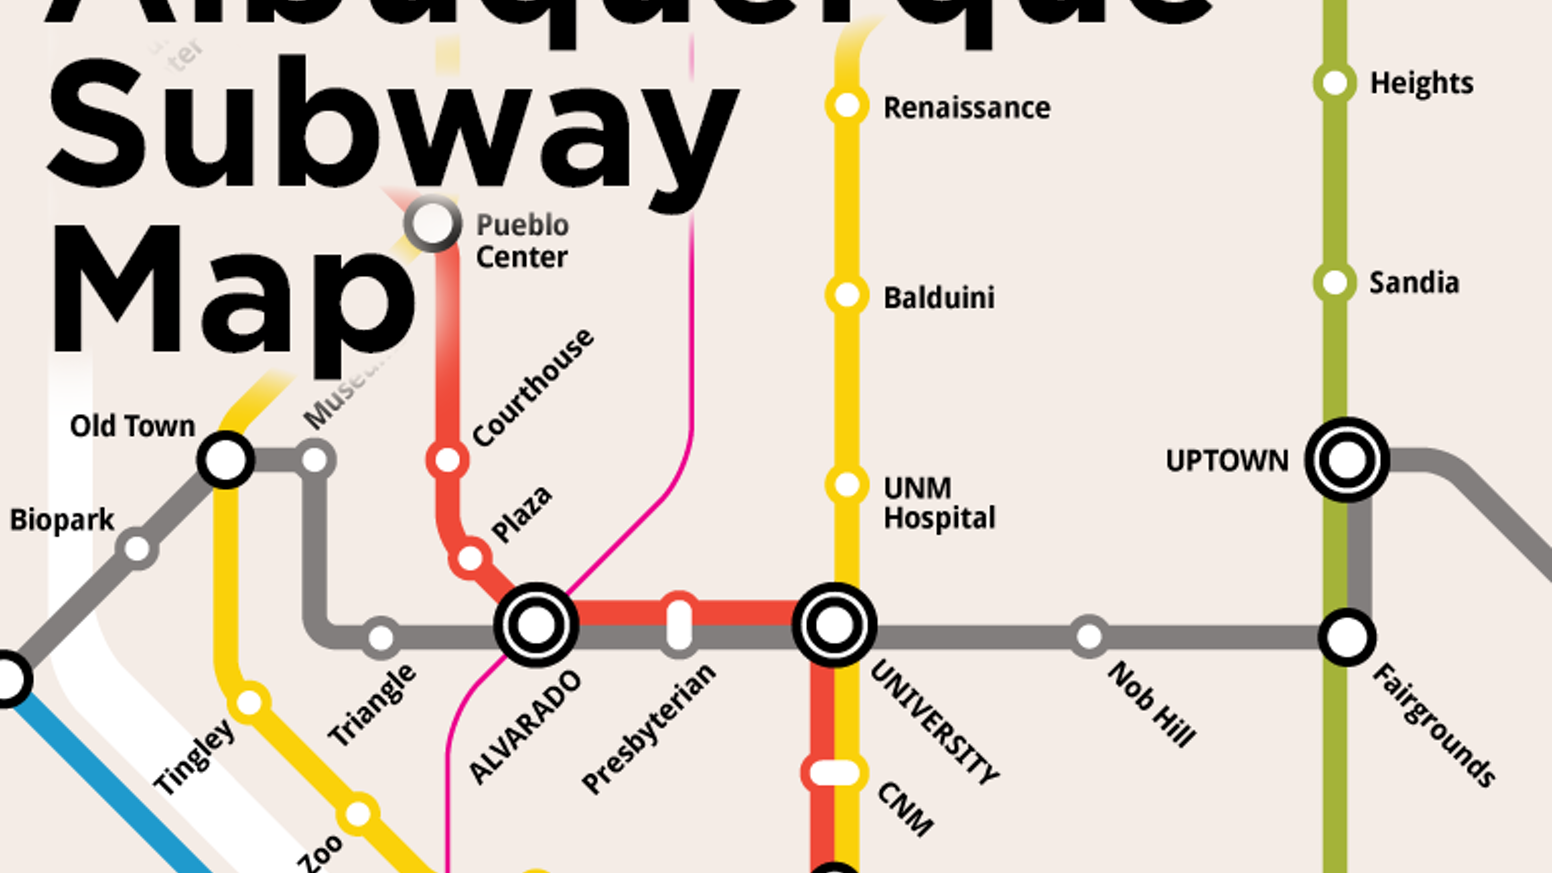 Seoul Subway Map Poster.Albuquerque Subway Poster By Ben Byrne Kickstarter